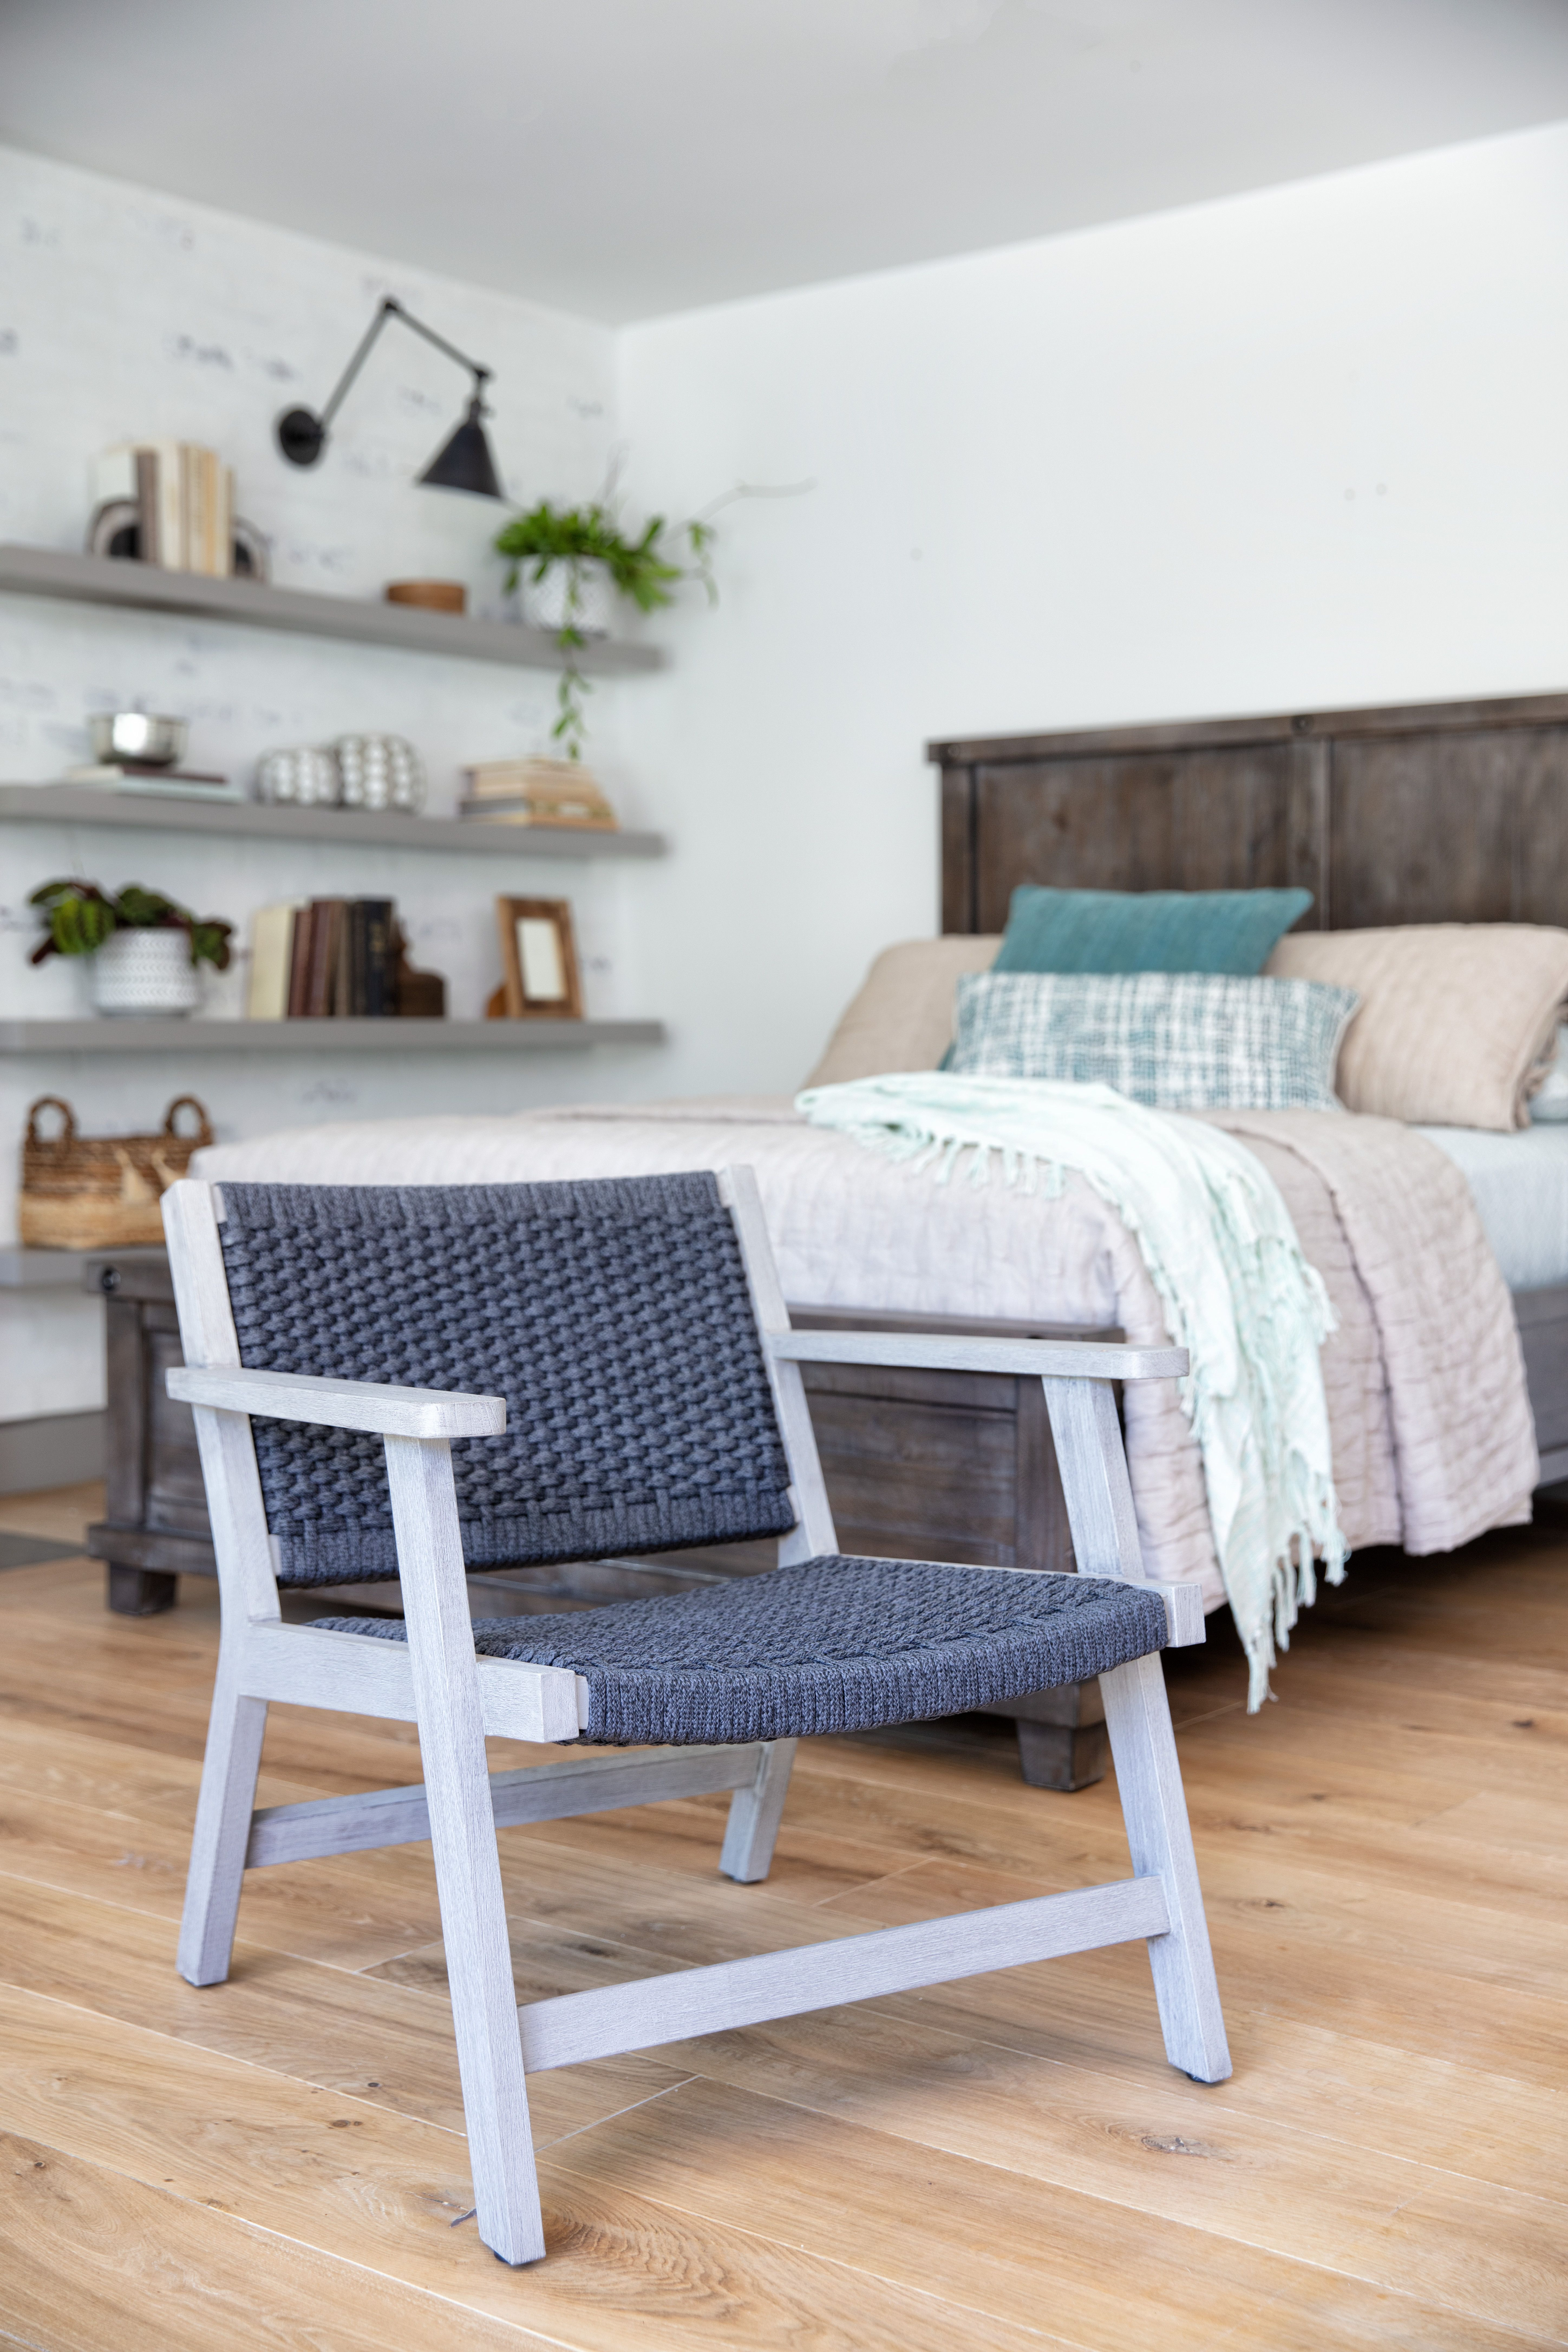 Everyone Needs An Accent Chair In Their Bedroom To Put Their Laundry On Furniture Accent Chairs Home Decor